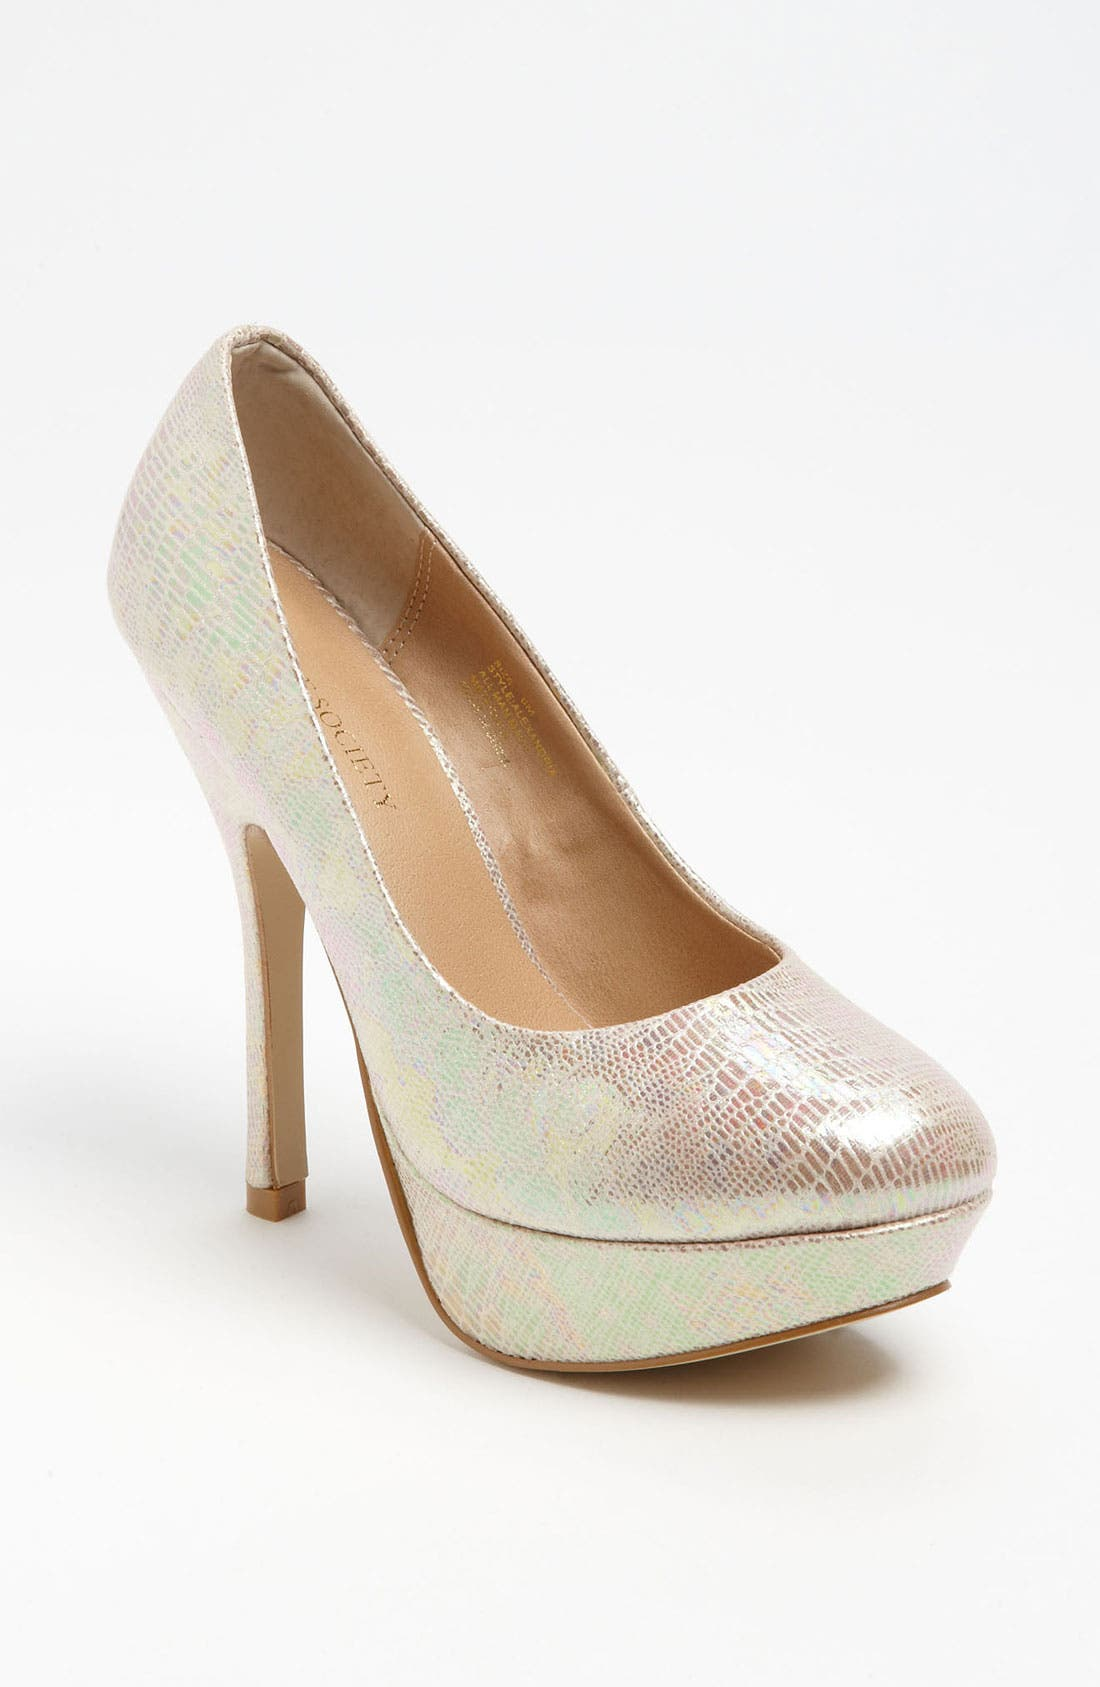 Alternate Image 1 Selected - Sole Society 'Alexandria' Pump